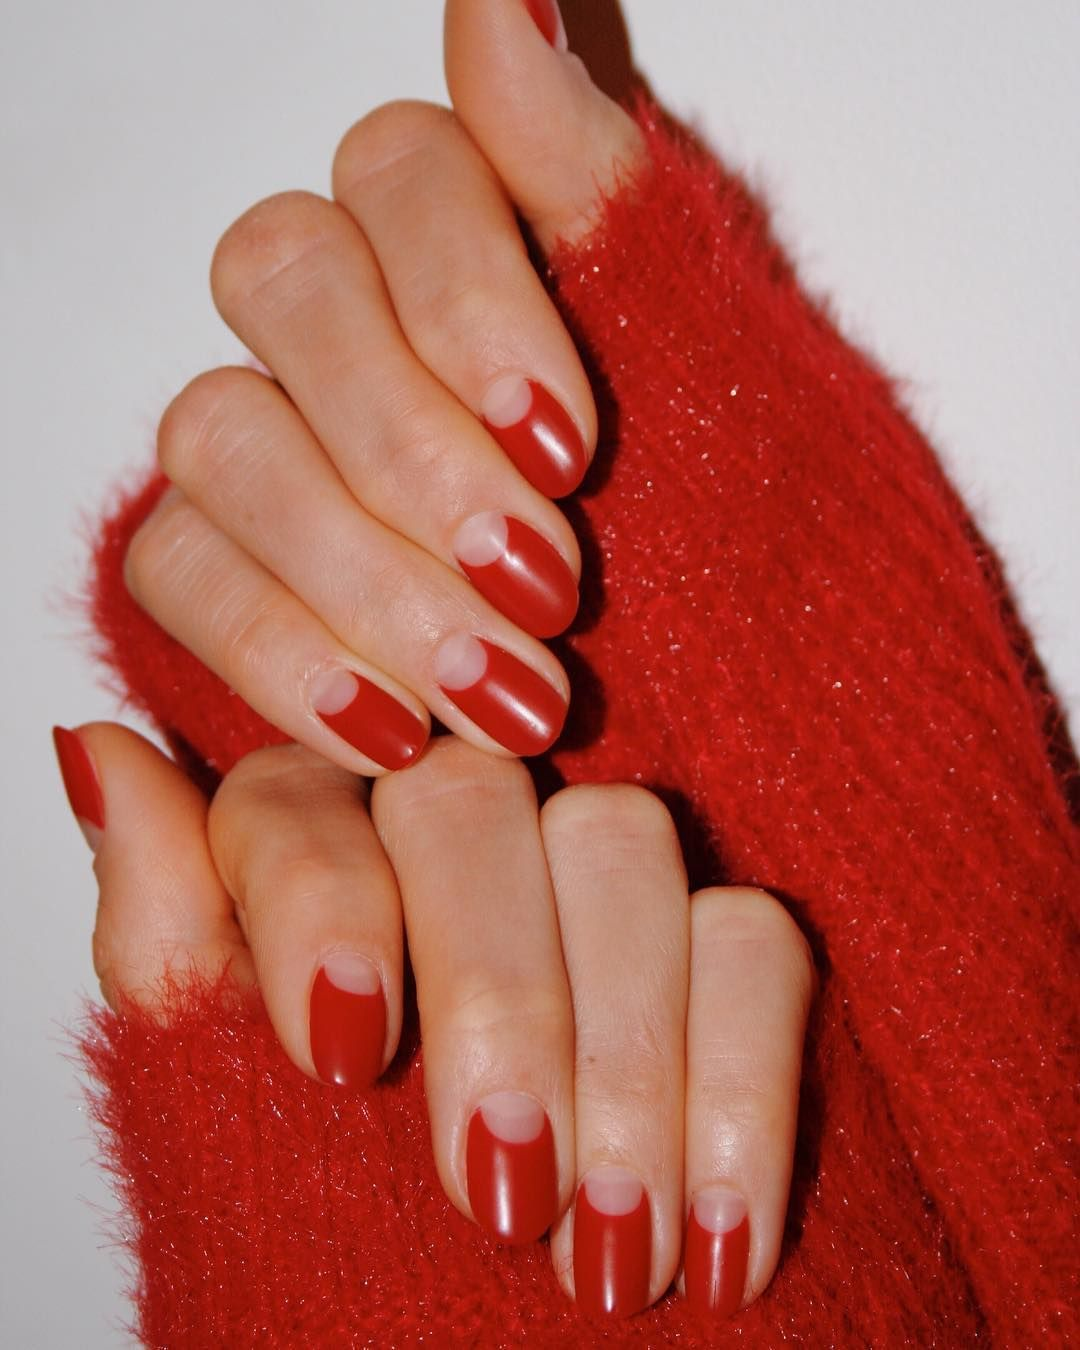 Valentine S Day Is The Perfect Excuse To Adorn Your Fingertips With Hearts Glitter And Multiple Shades Moon Manicure Half Moon Manicure Winter Nails Acrylic